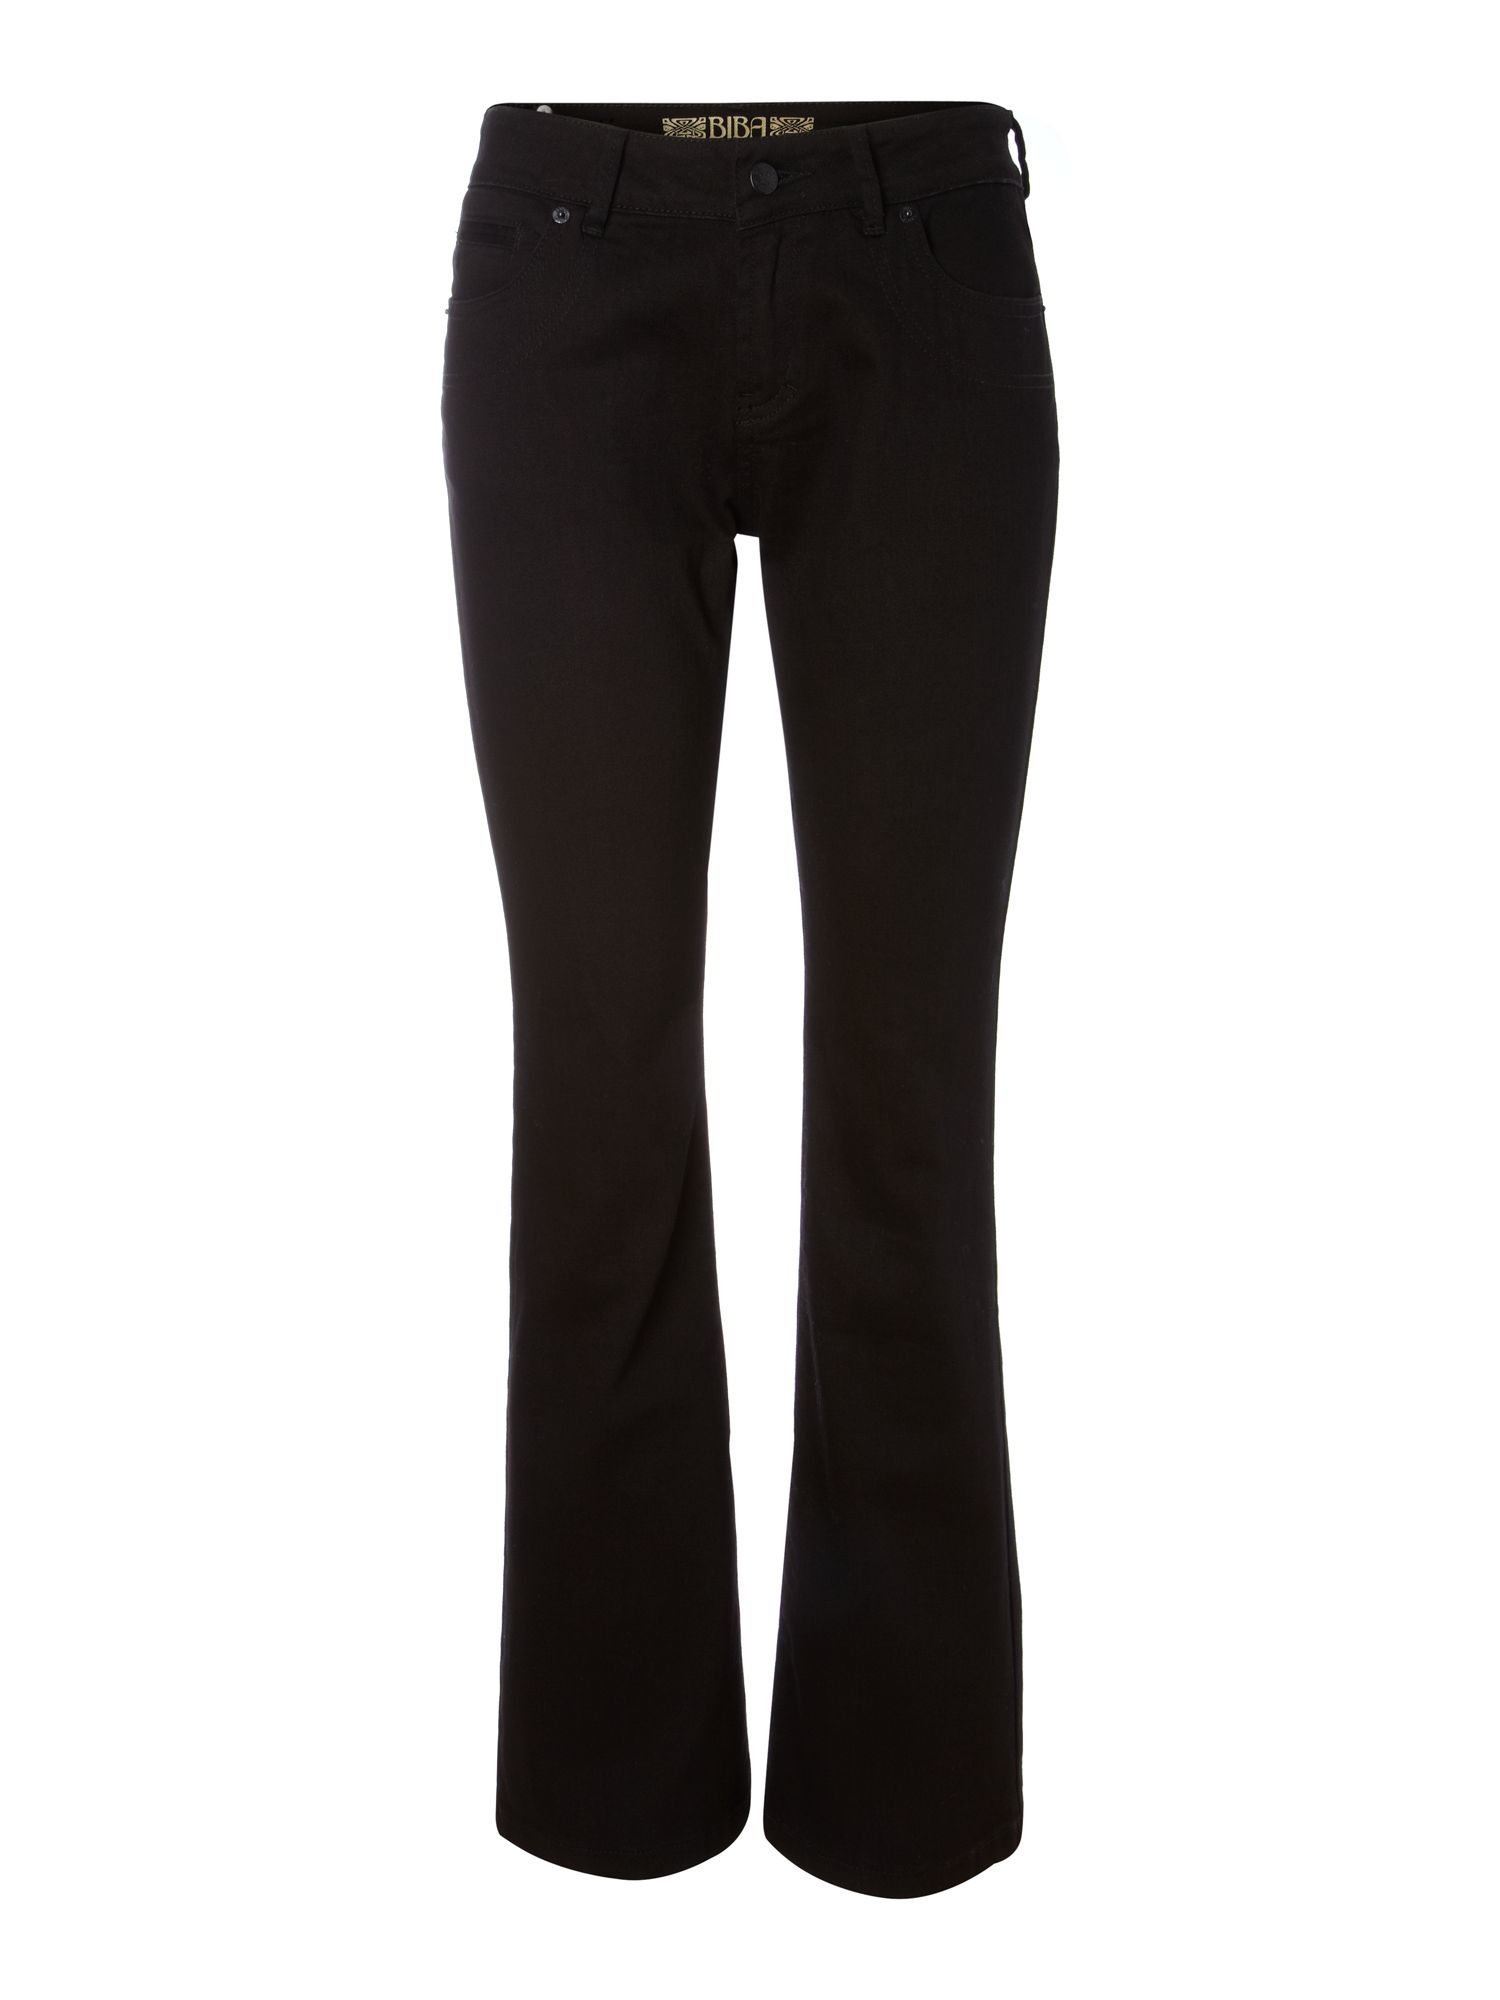 Ava slim flared black jeans